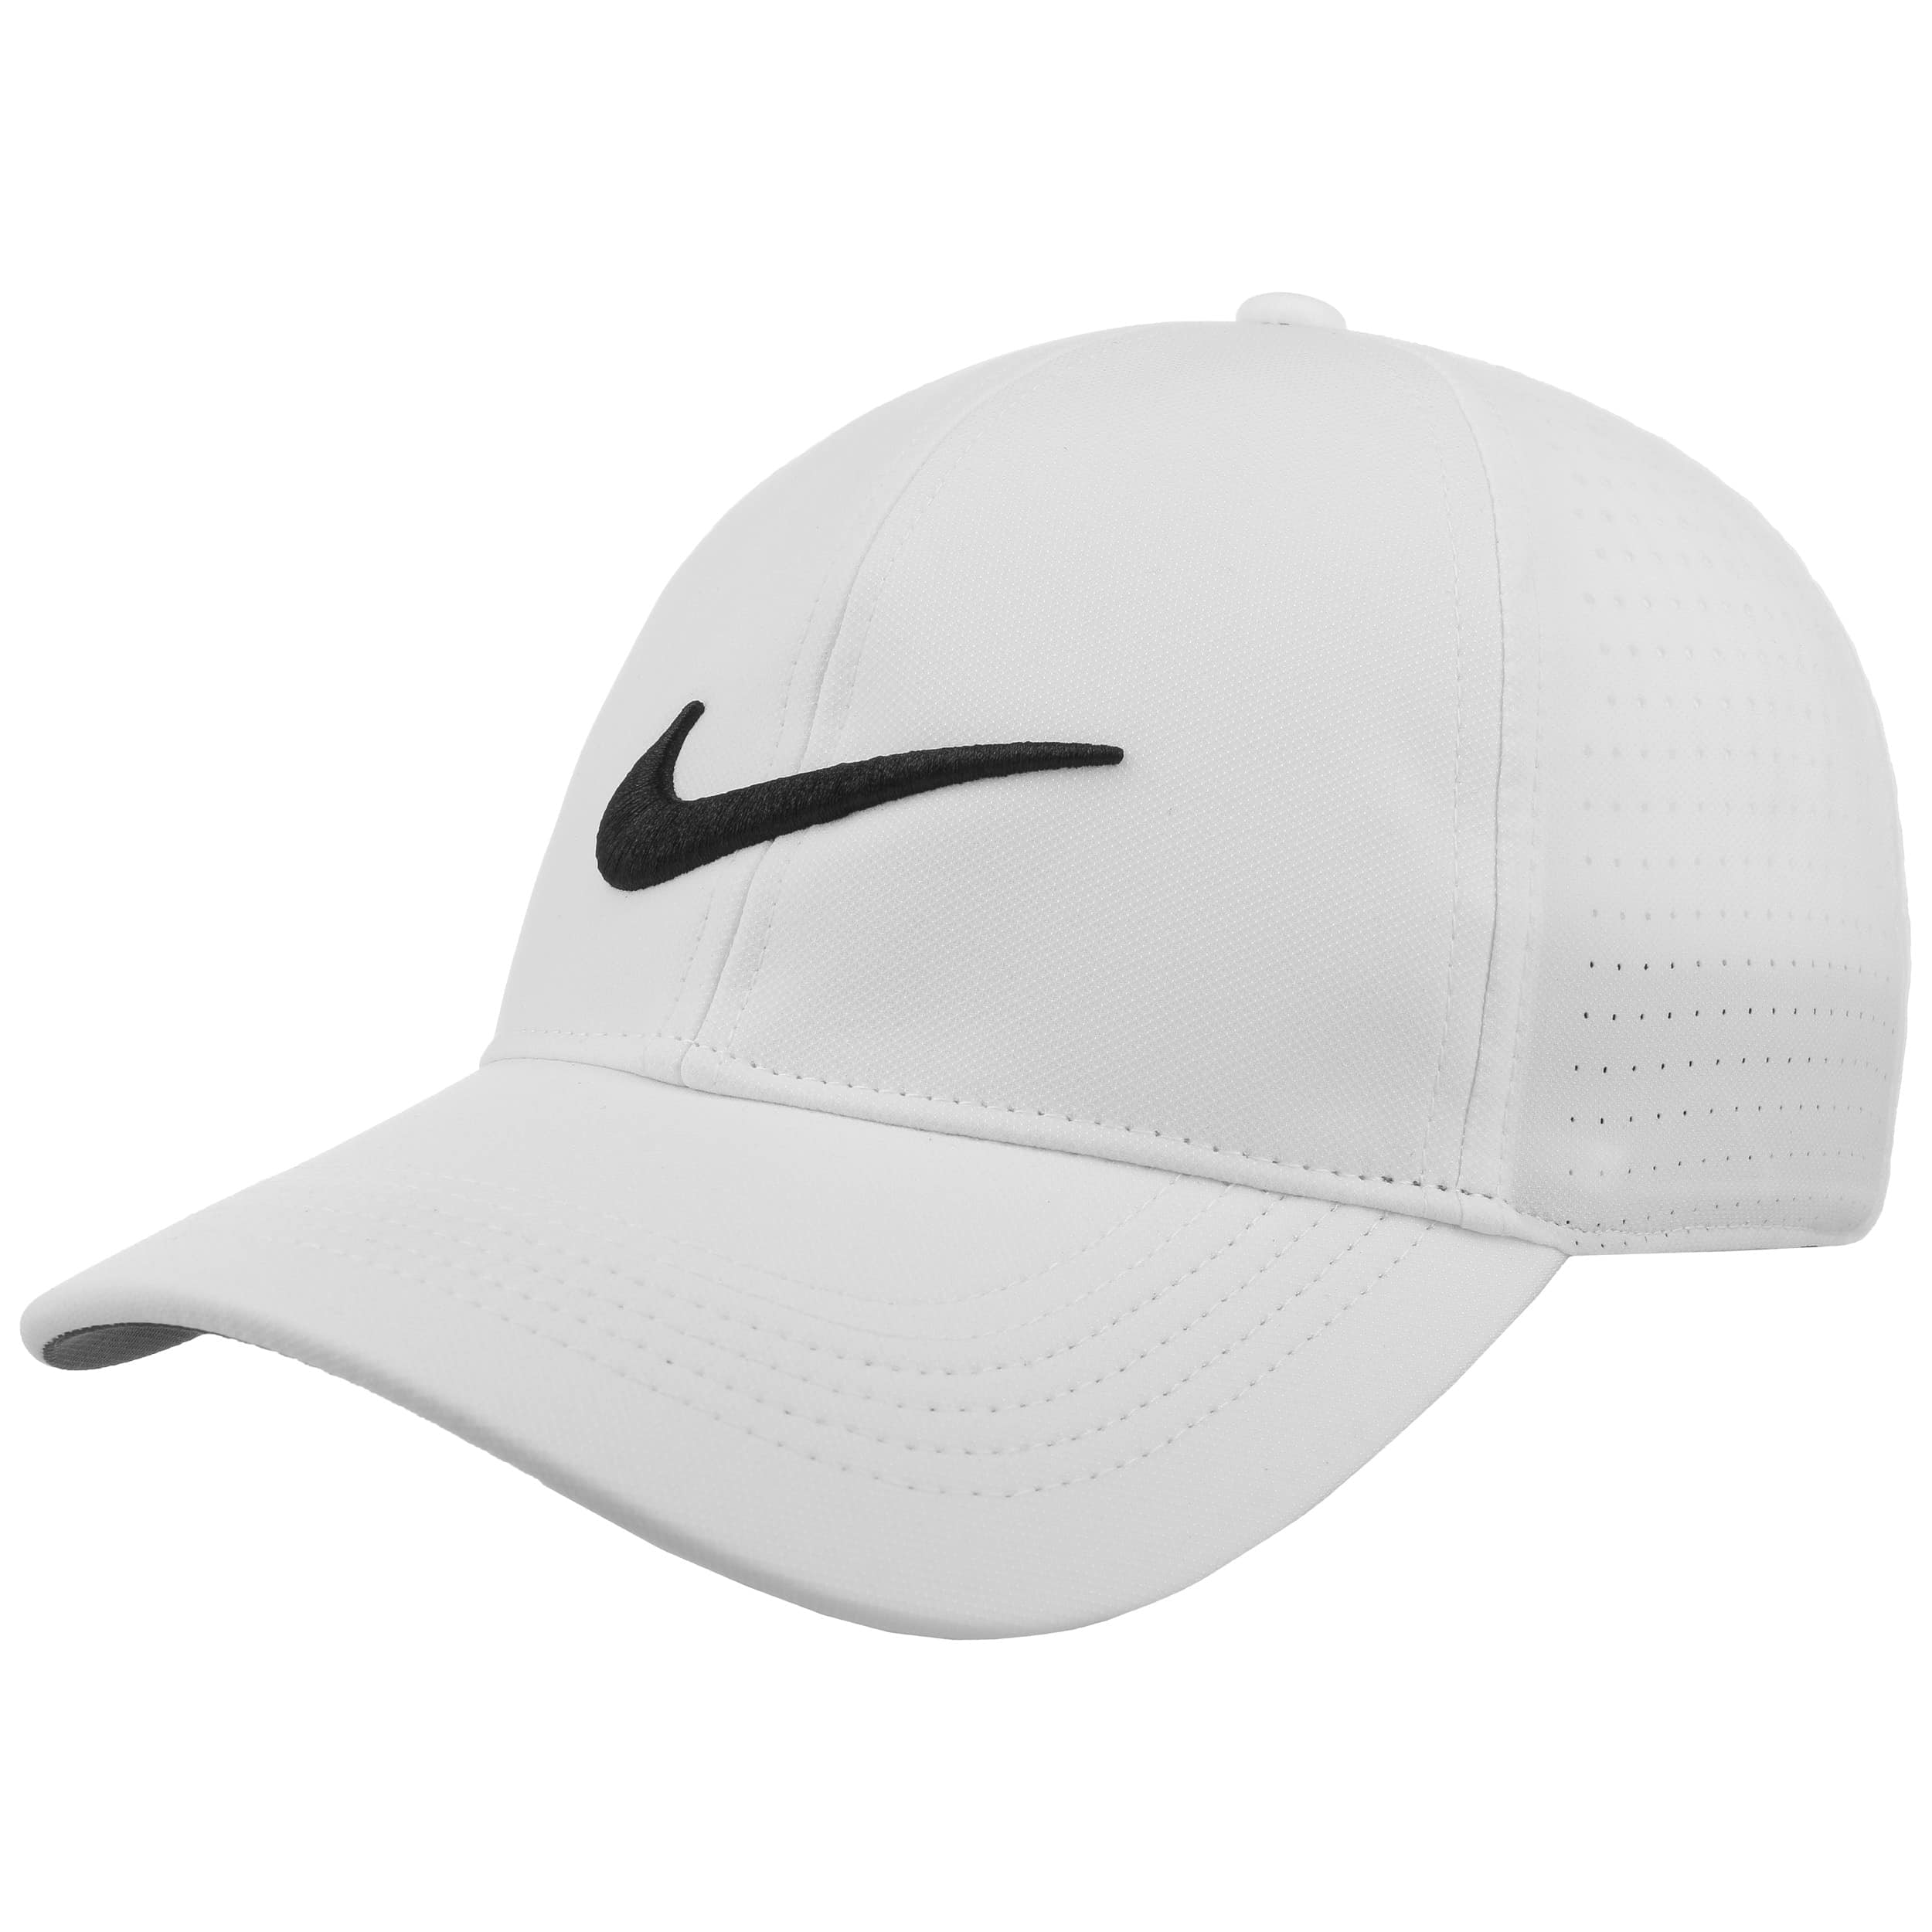 premium selection 69a61 8a1df ... netherlands legacy 91 perf strapback cap by nike white 6 e1fe6 001e7